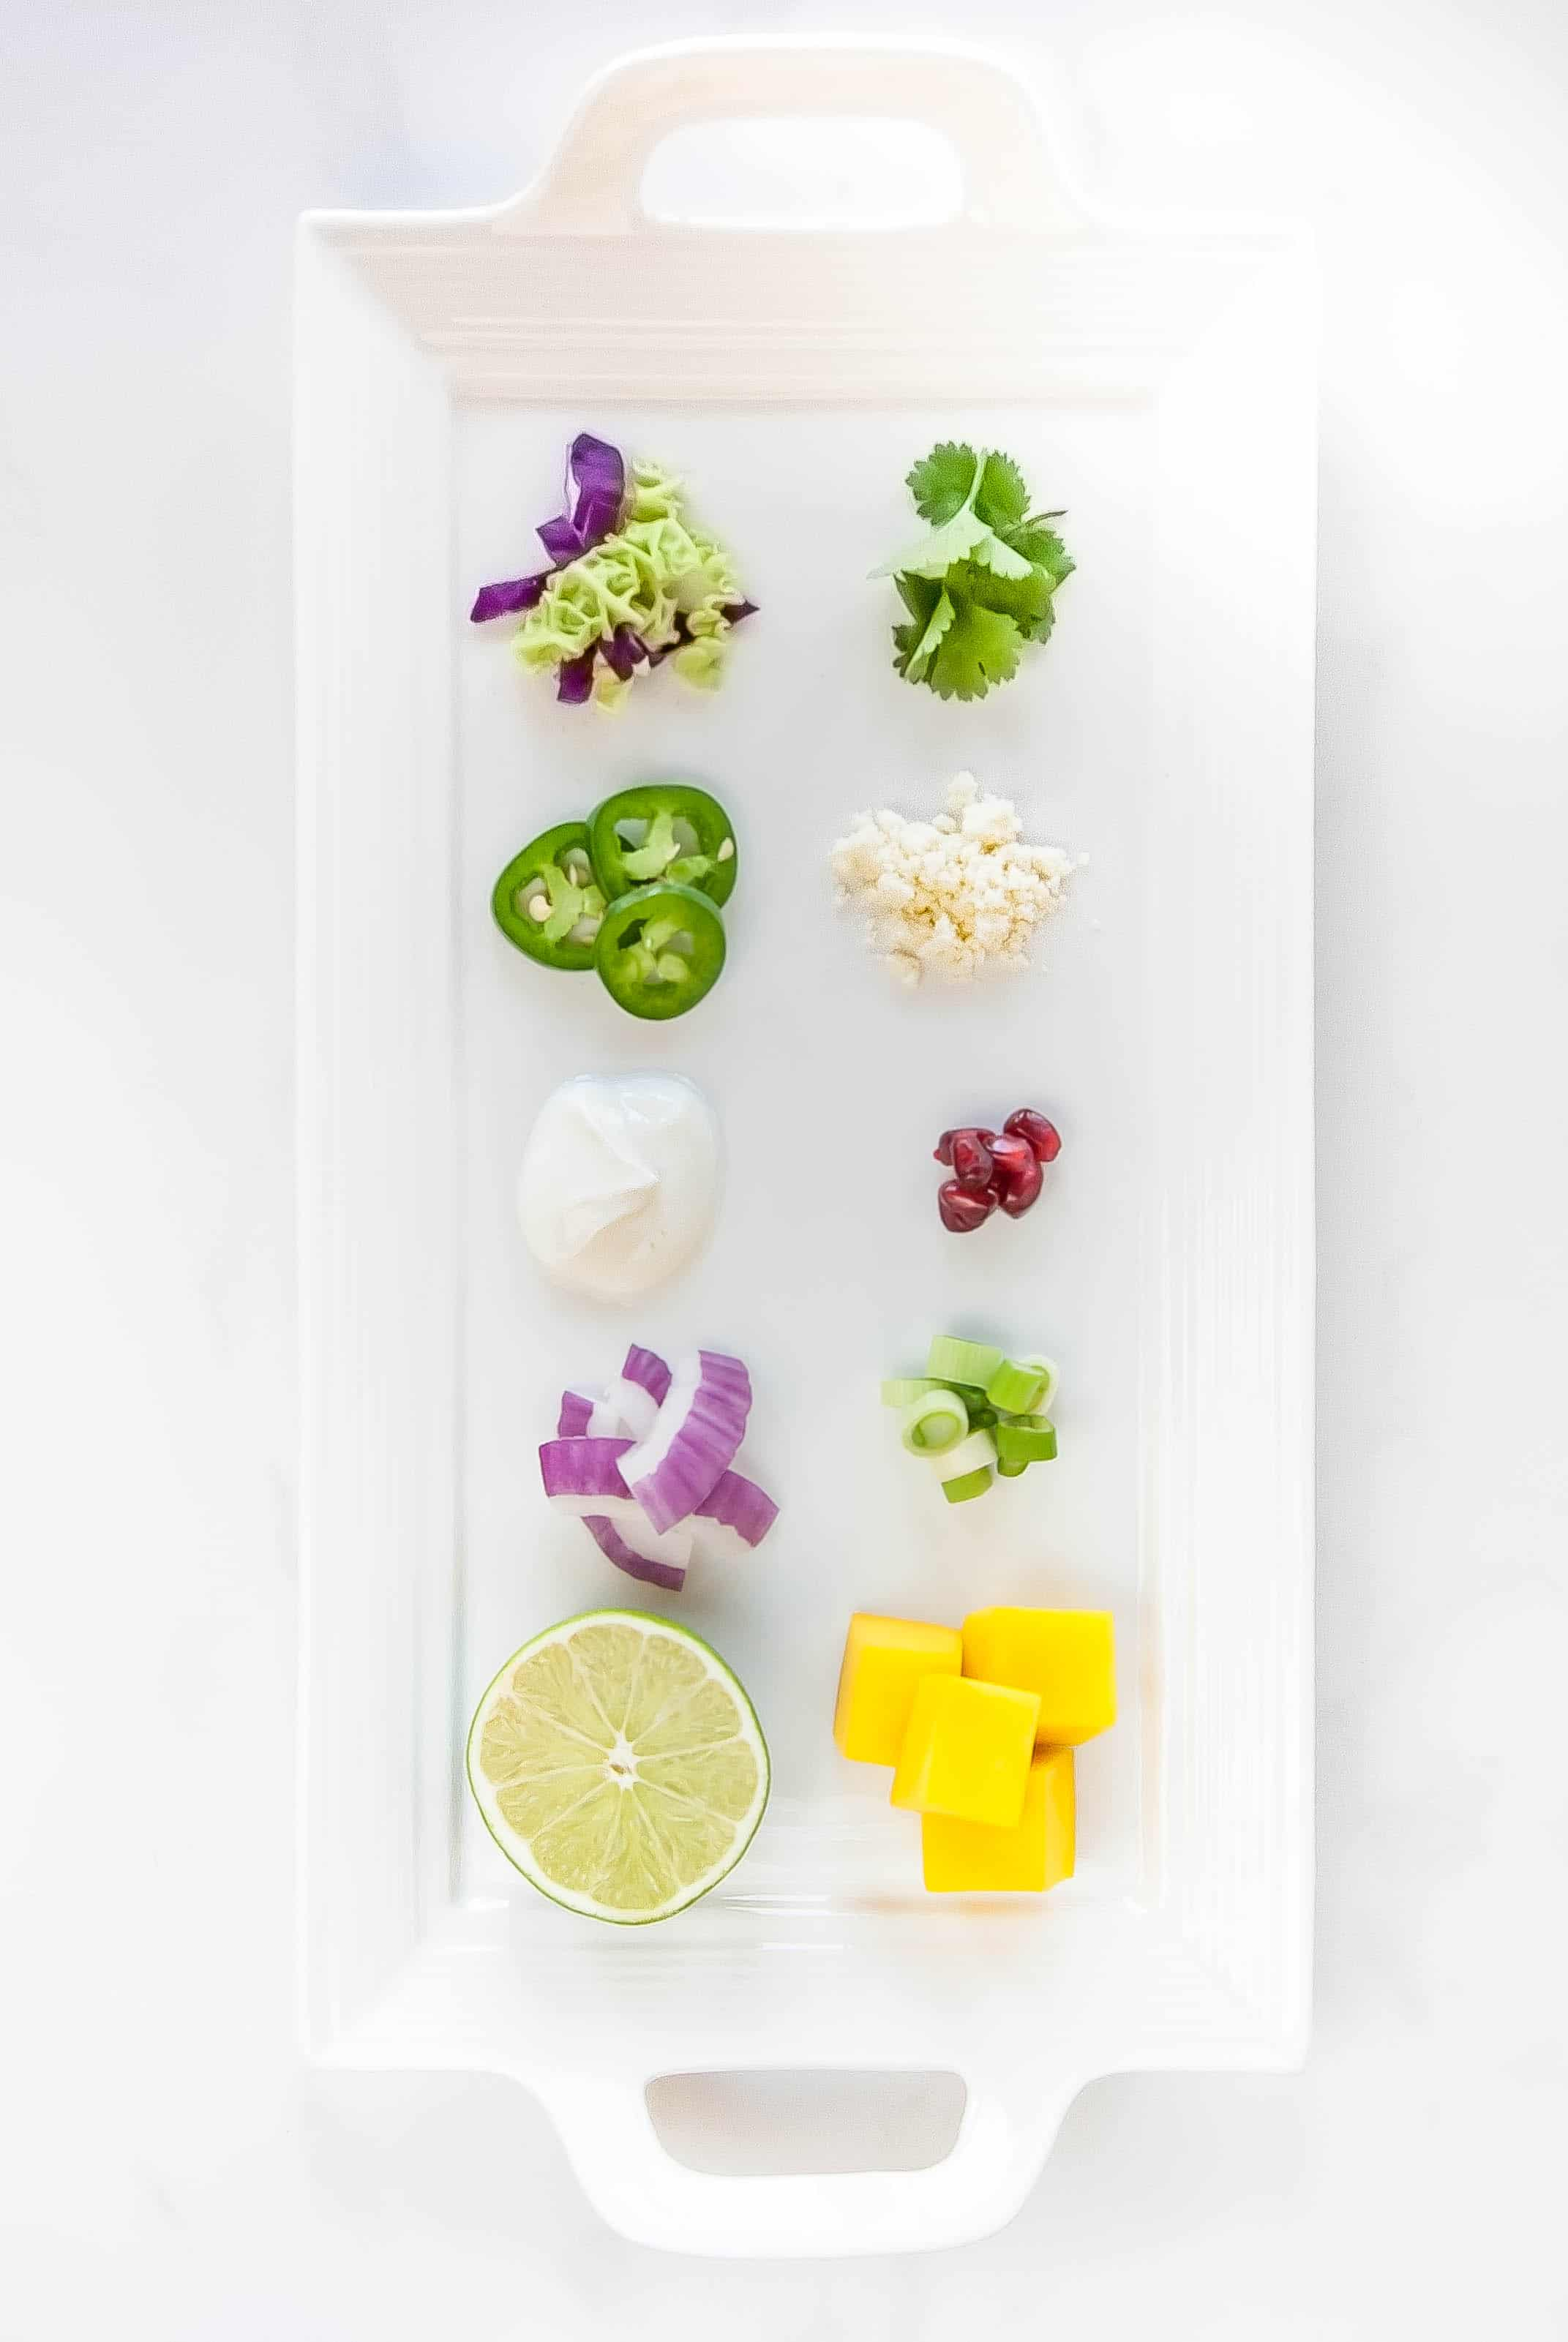 10 Healthy Taco Toppings